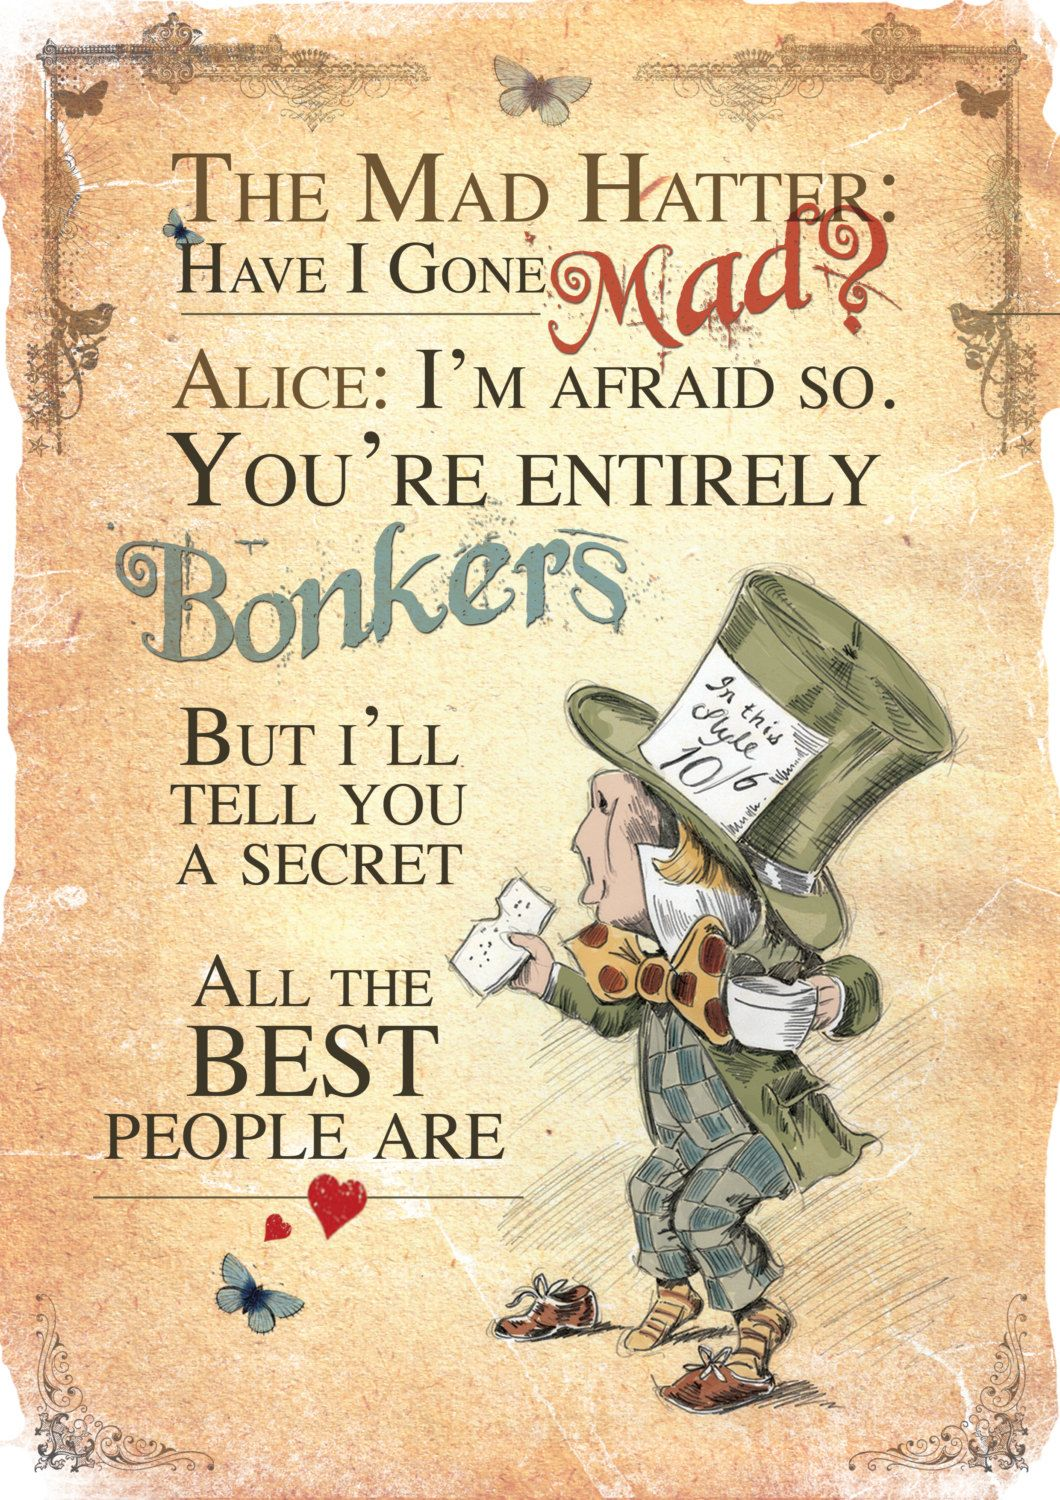 2d637c784b2 Alice in Wonderland A4 Poster Art - Mad Hatter Tea Party Have I Gone Mad  Quote